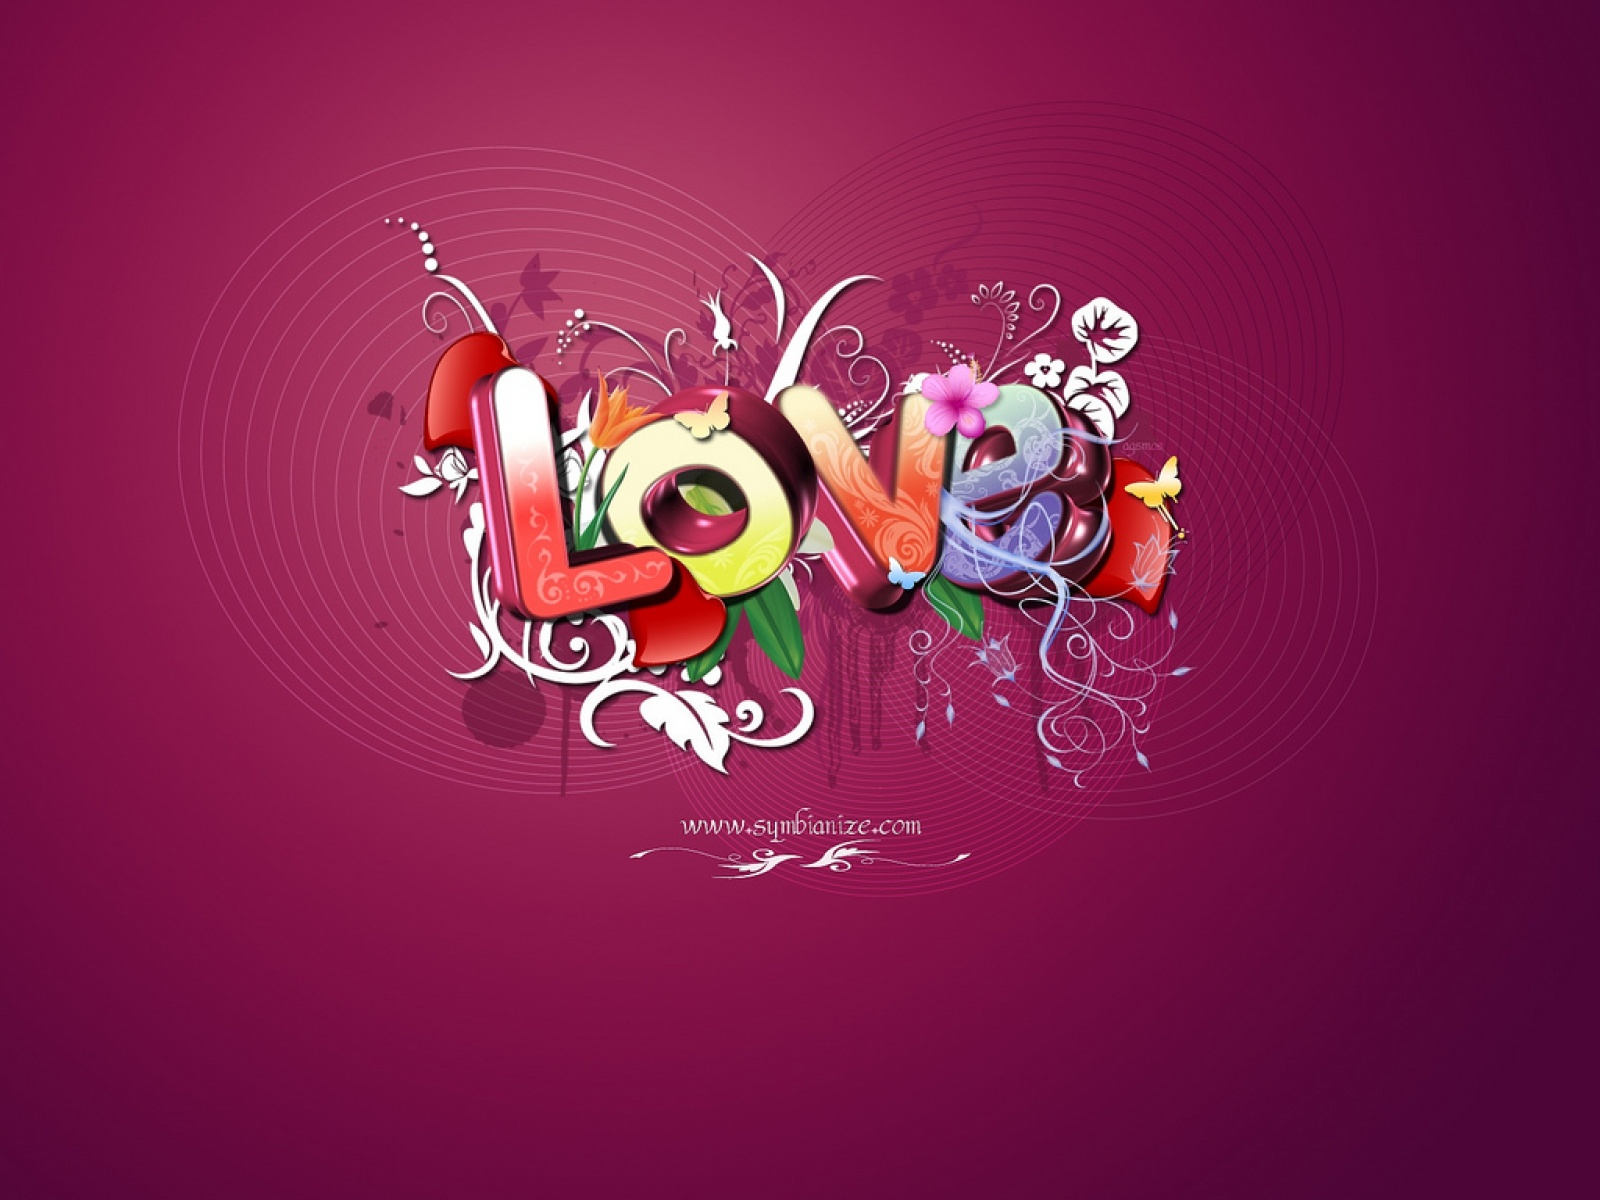 Valentines Day HD desktop backgrounds wallpapers 1600x1200